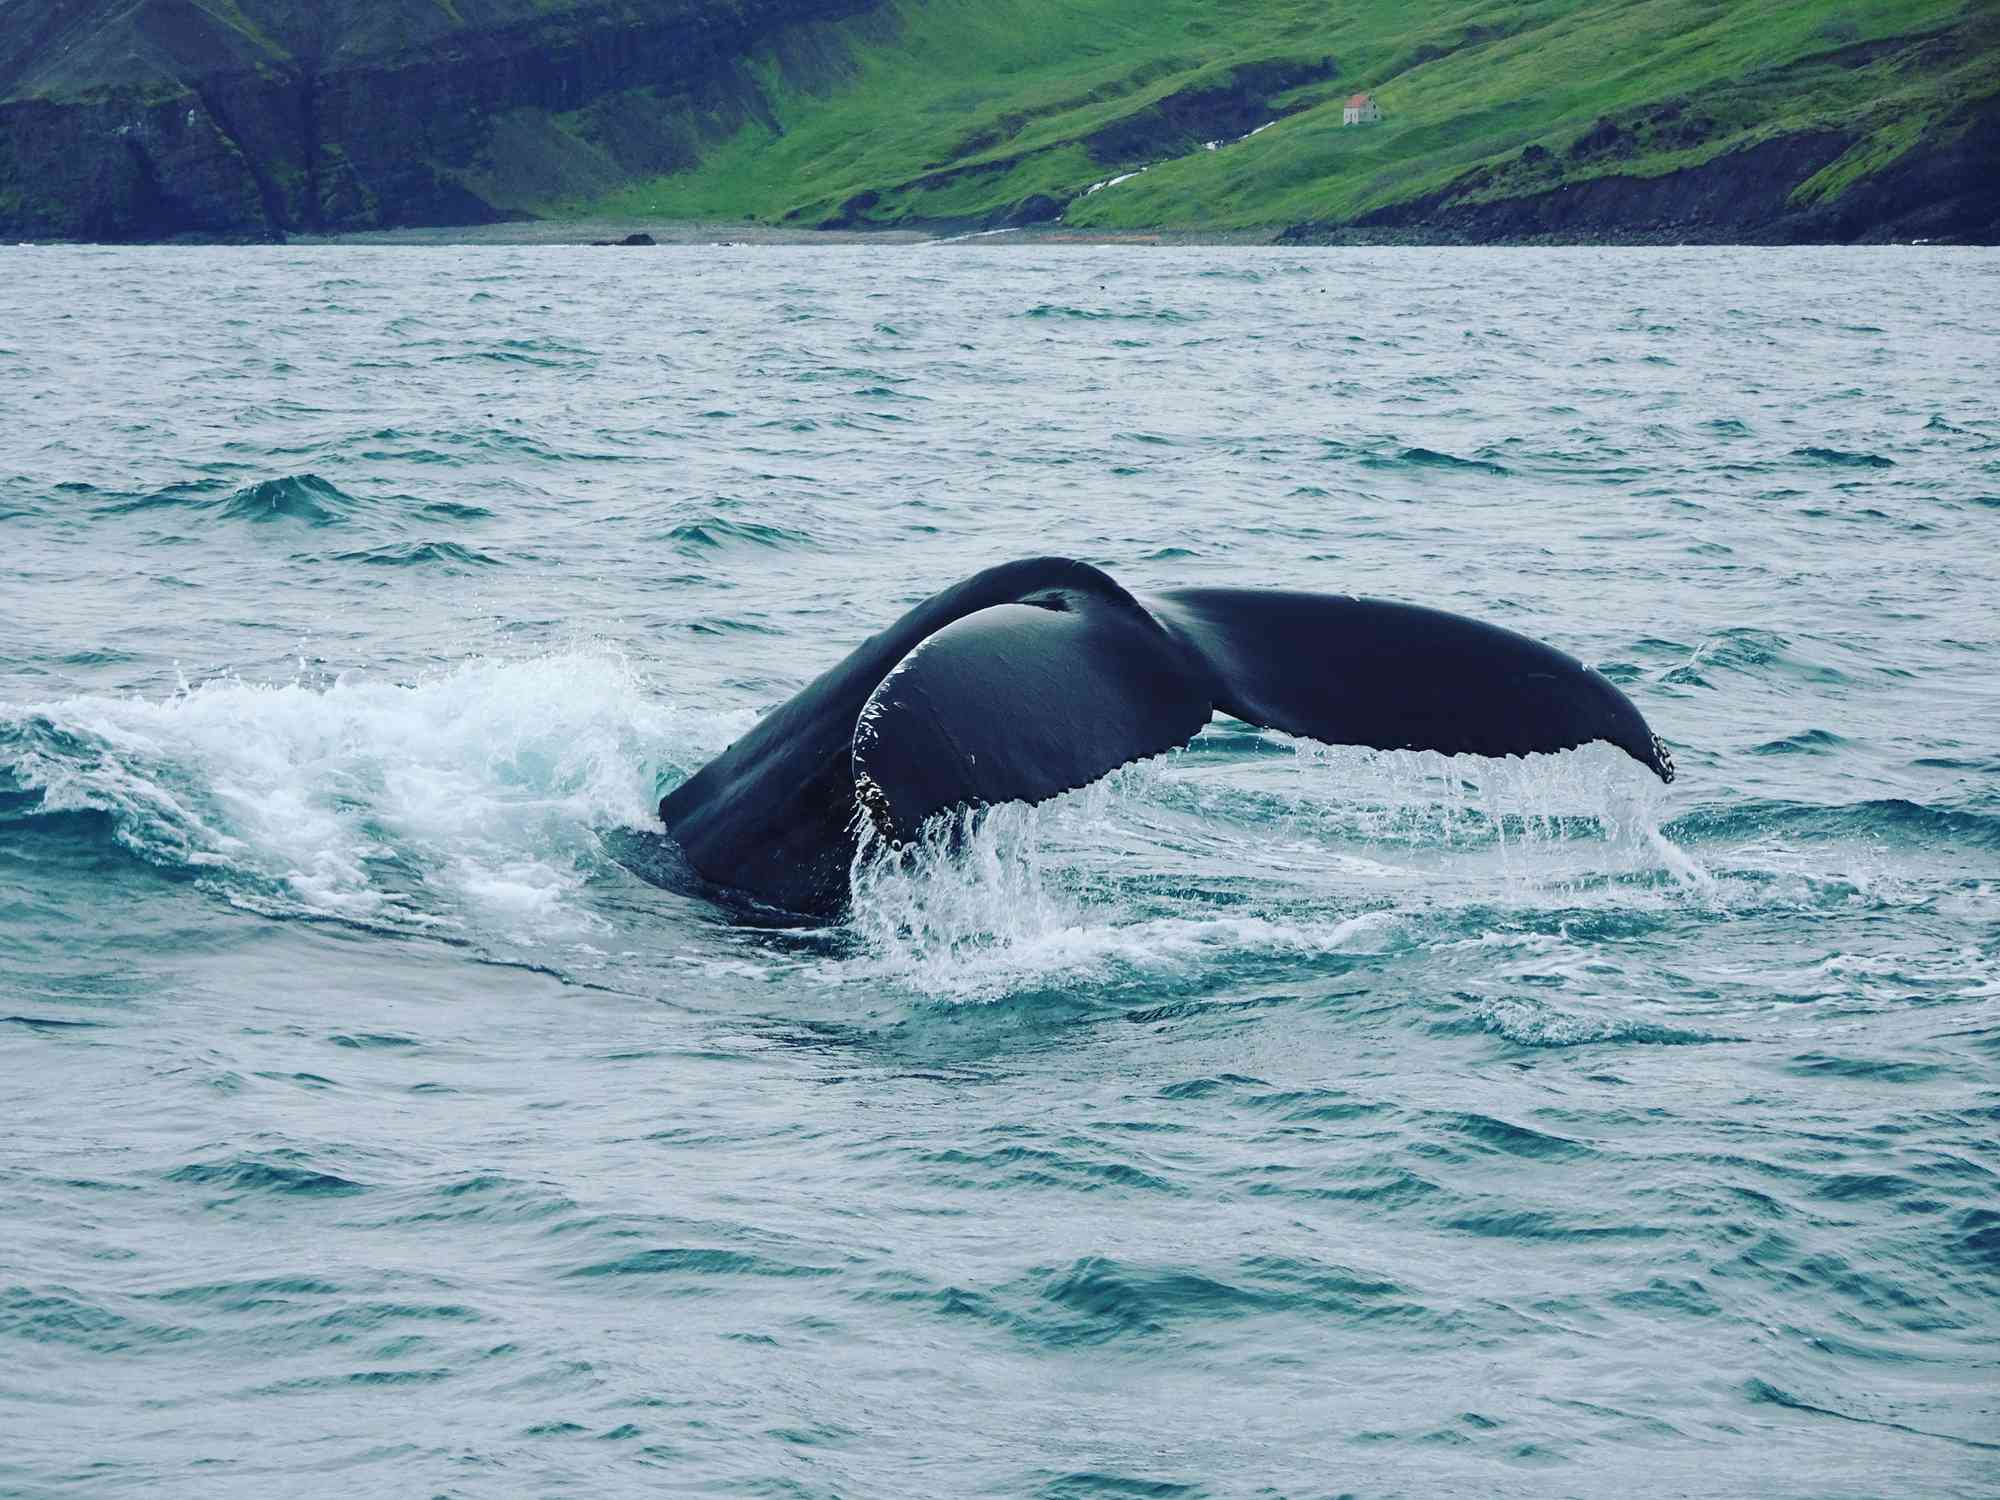 A whale swimming off the coast of Iceland.